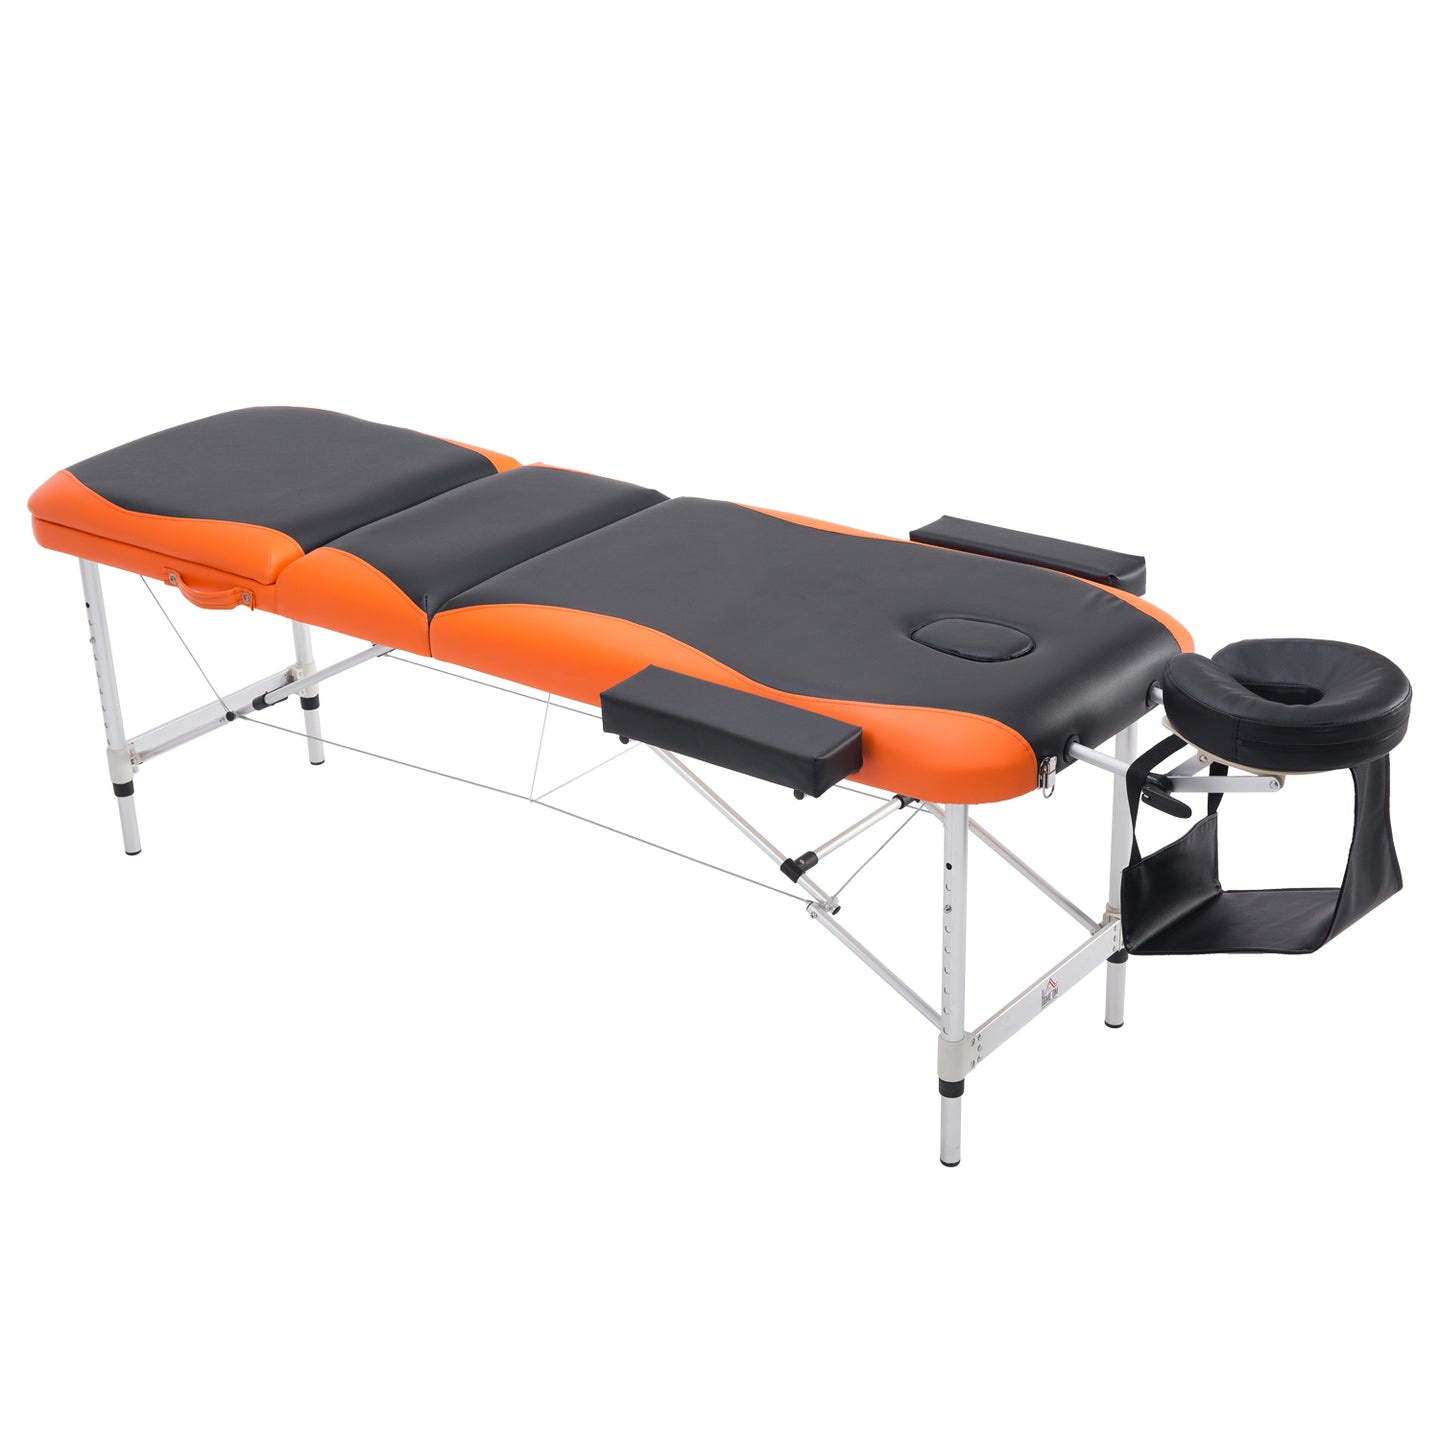 HOMCOM Professional Portable Massage Table W/ Headrest-Black/Orange